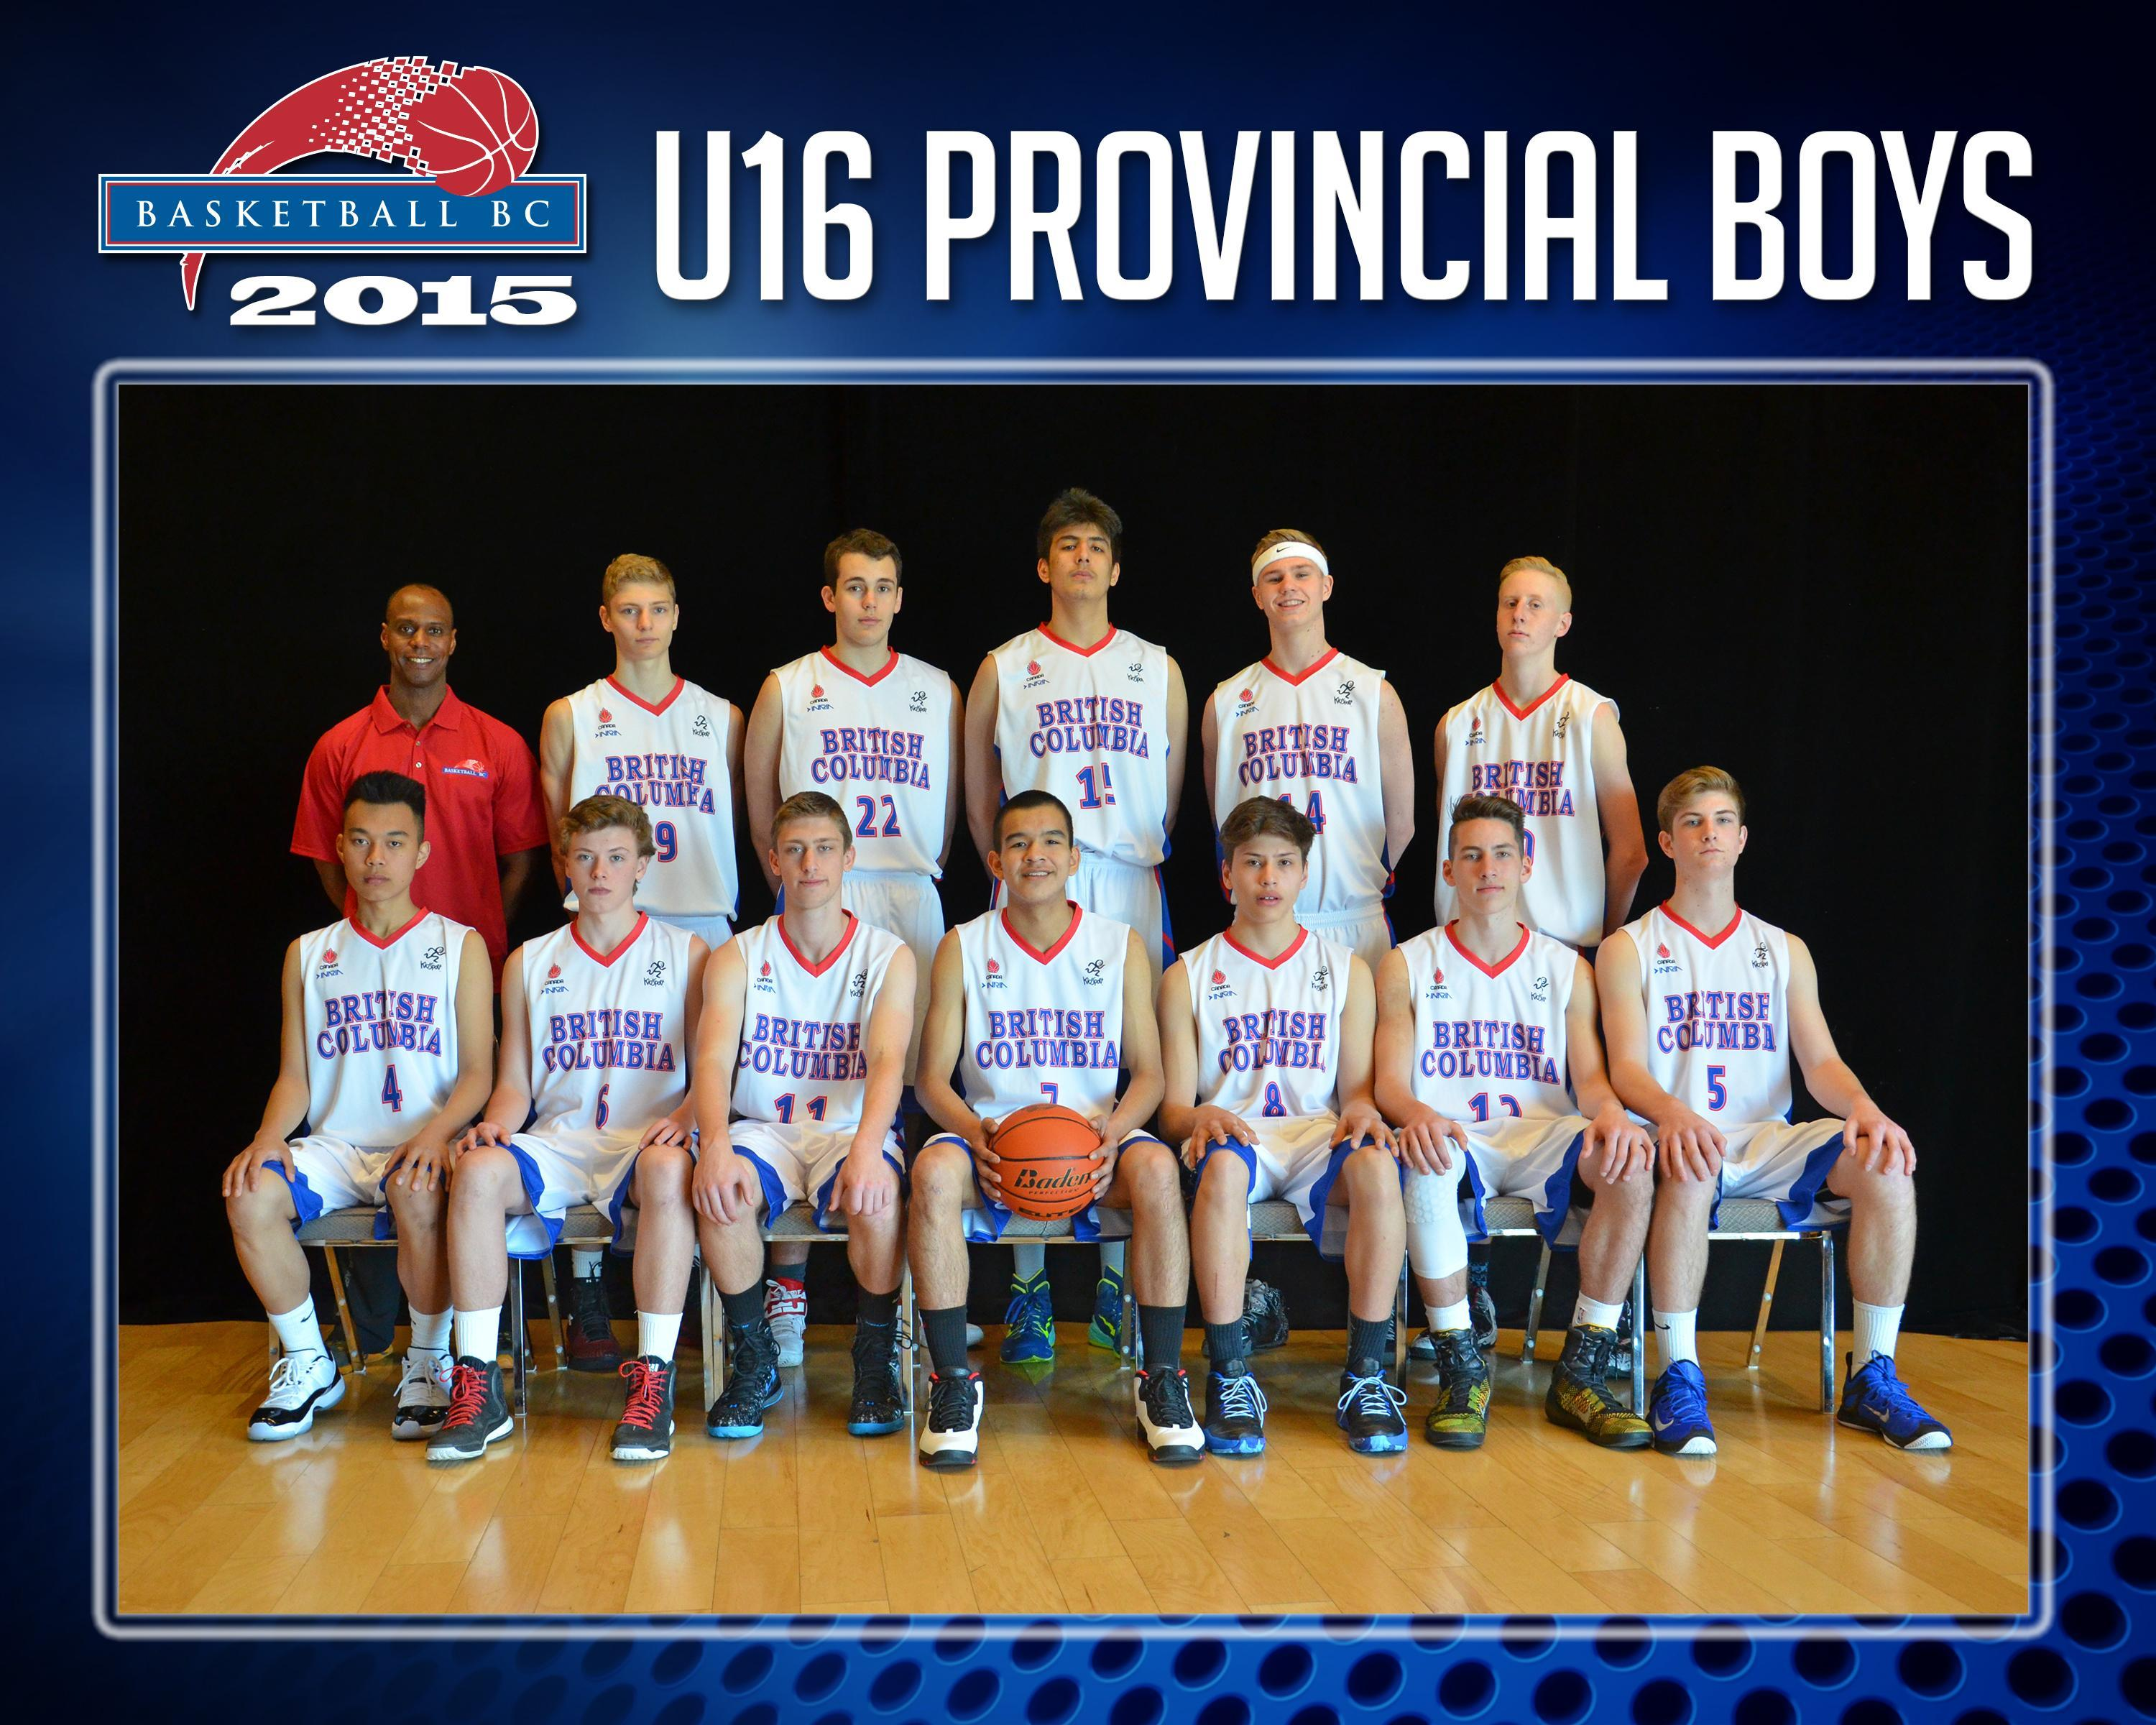 2015 rosters - basketball bc